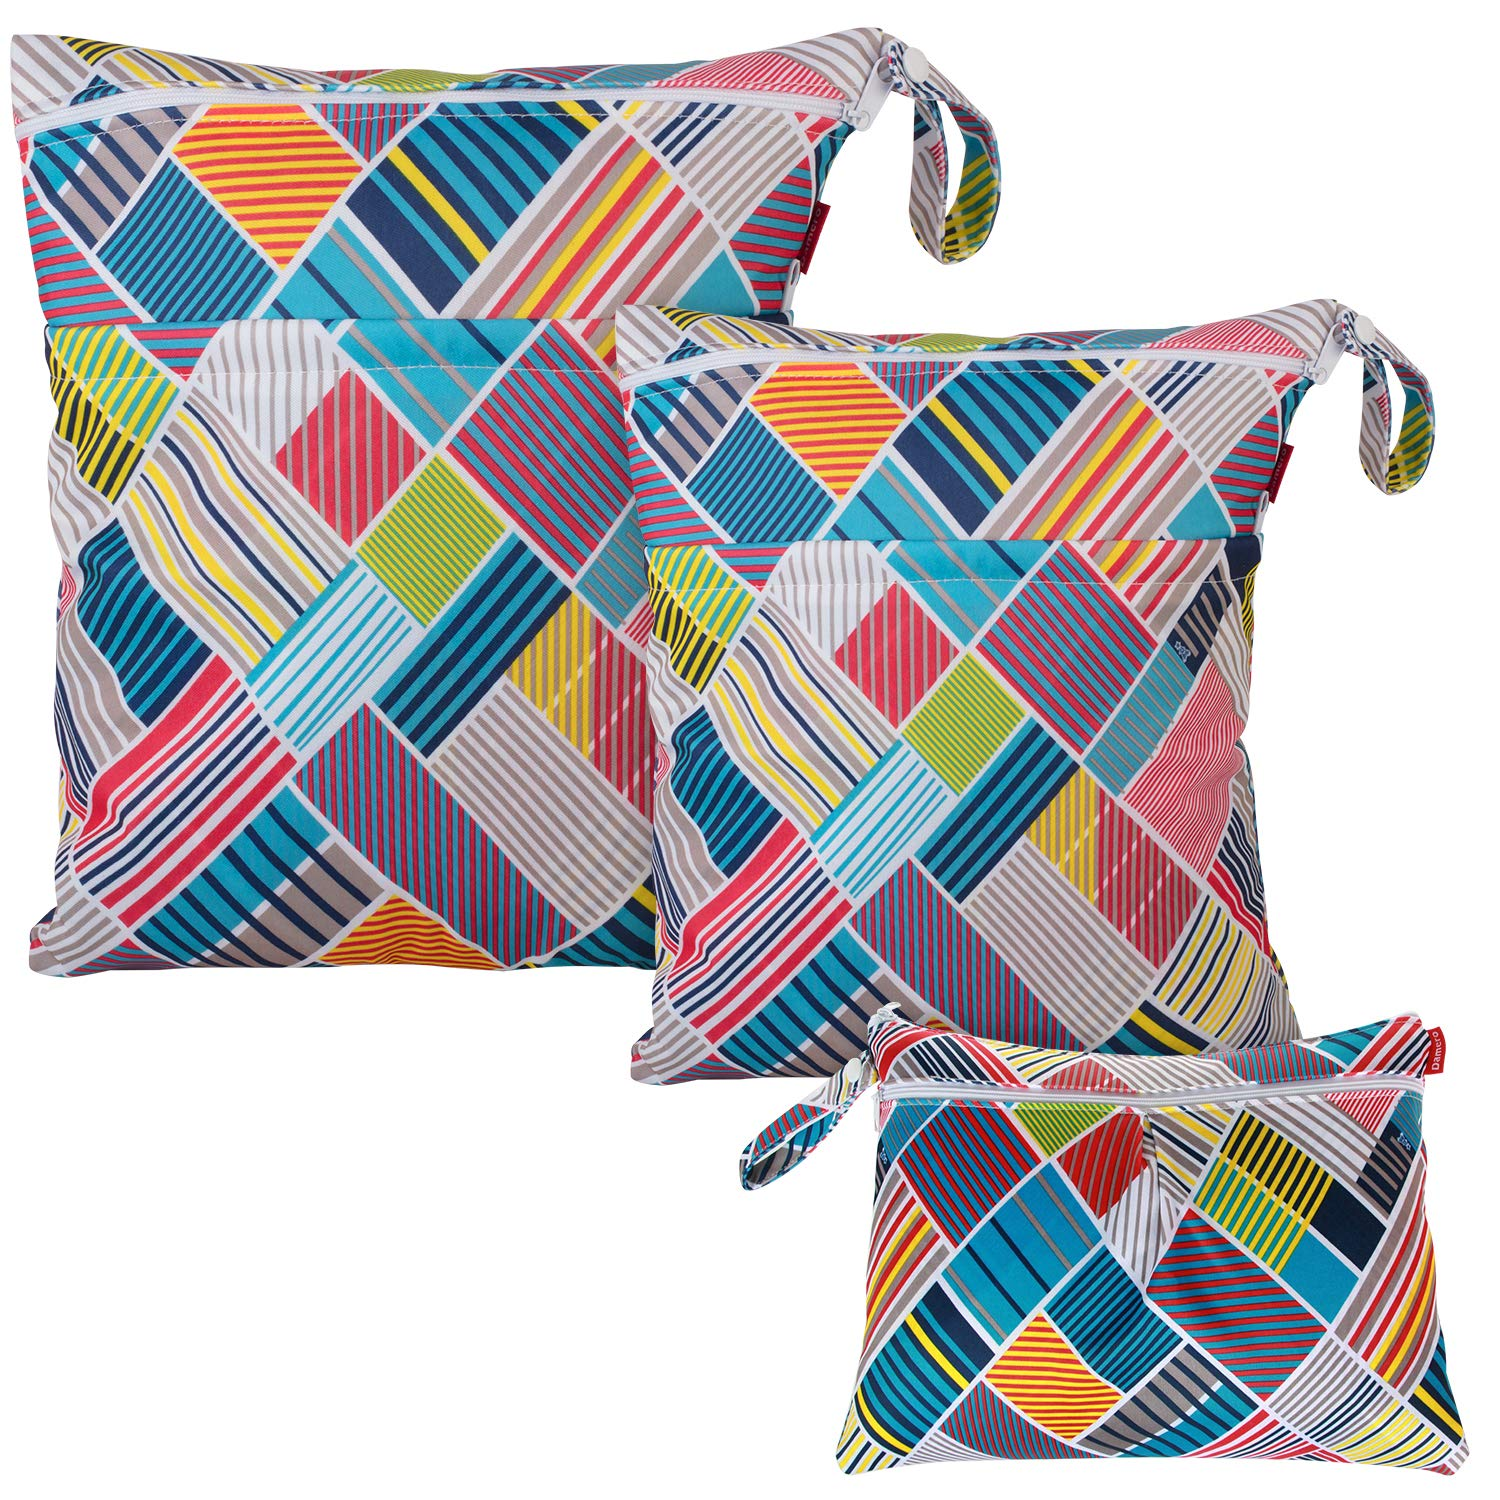 Damero 3pcs Wet Dry Bag for Cloth Diapers Daycare Organizer Bag, Cloth Diaper Wet Dry Bag with Handle for Swimsuit, Pumping Parts, Wet Clothes and More, Multi Stripes